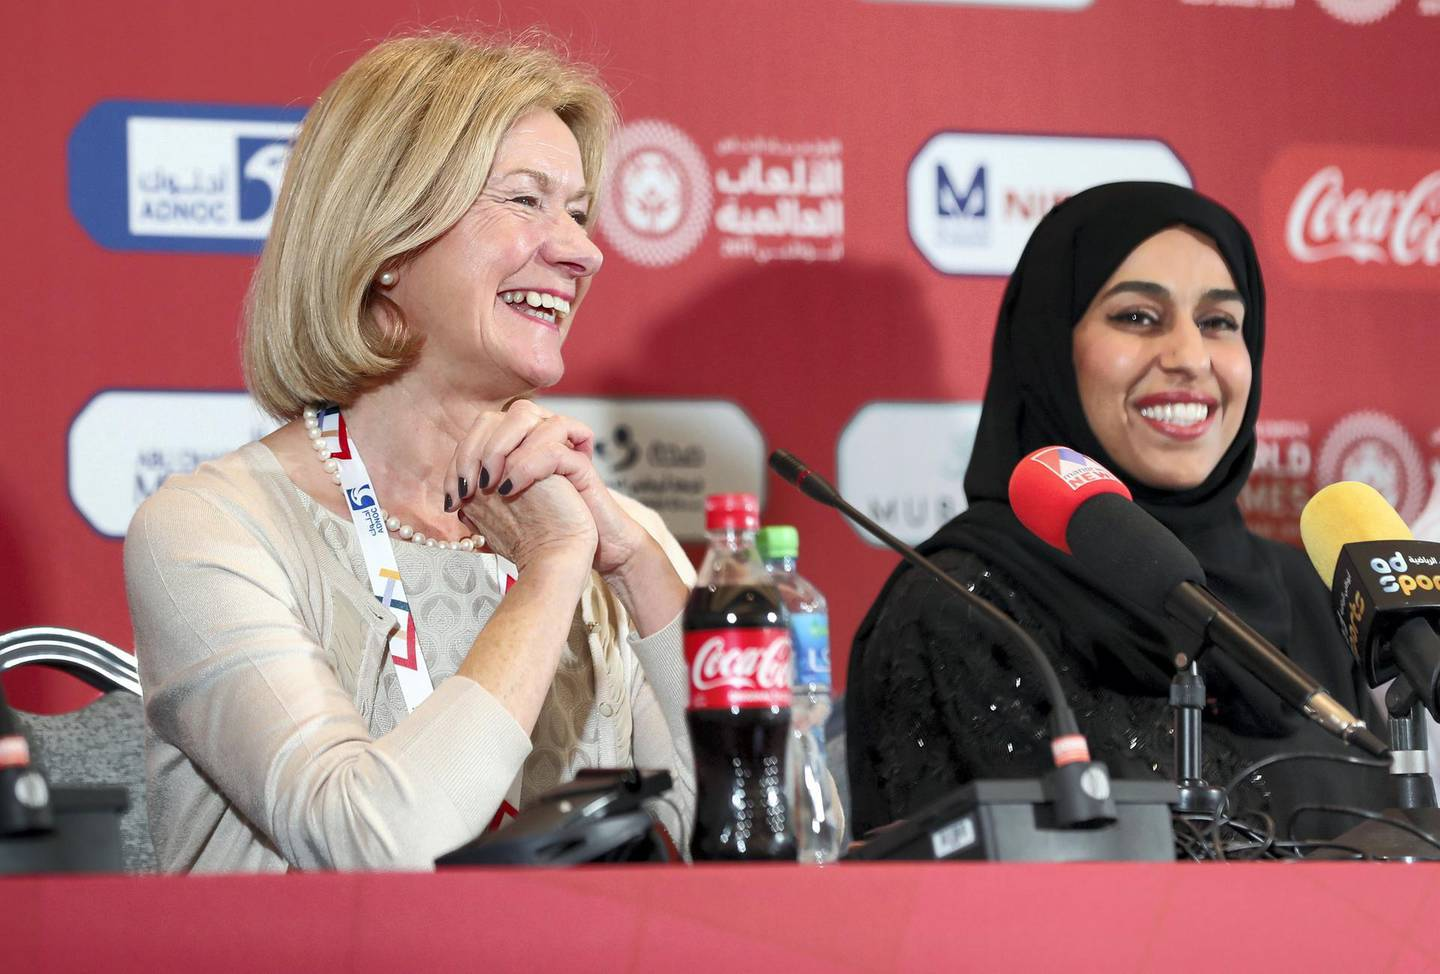 Abu Dhabi, United Arab Emirates - March 13, 2019: L-R Mary Davis, CEO of Special Olympics International, Her Excellency Hessa bint Essa Buhumaid, Minister of Community Development speak at the Special Olympics Opening Press Conference. Wednesday the 13th of March 2019 at ADNEC, Abu Dhabi. Chris Whiteoak / The National